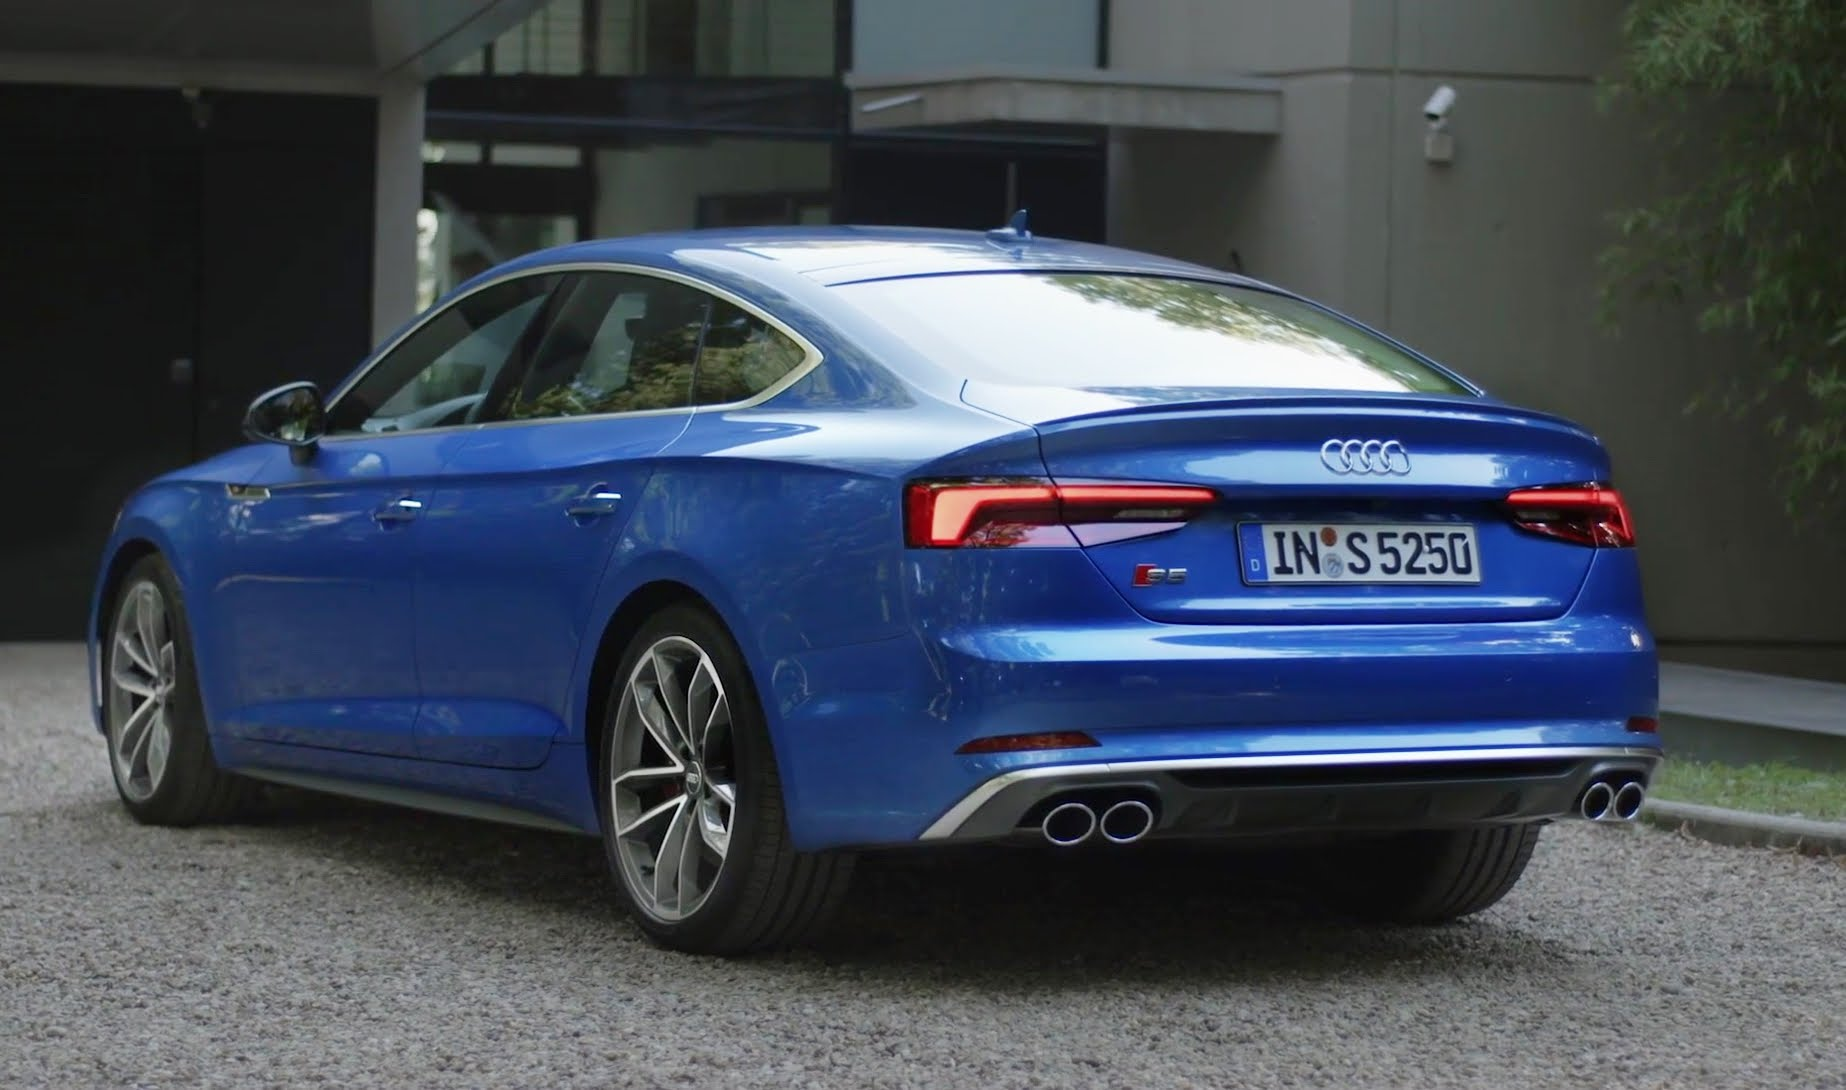 Audi S5 Wallpapers Vehicles Hq Audi S5 Pictures 4k Wallpapers 2019